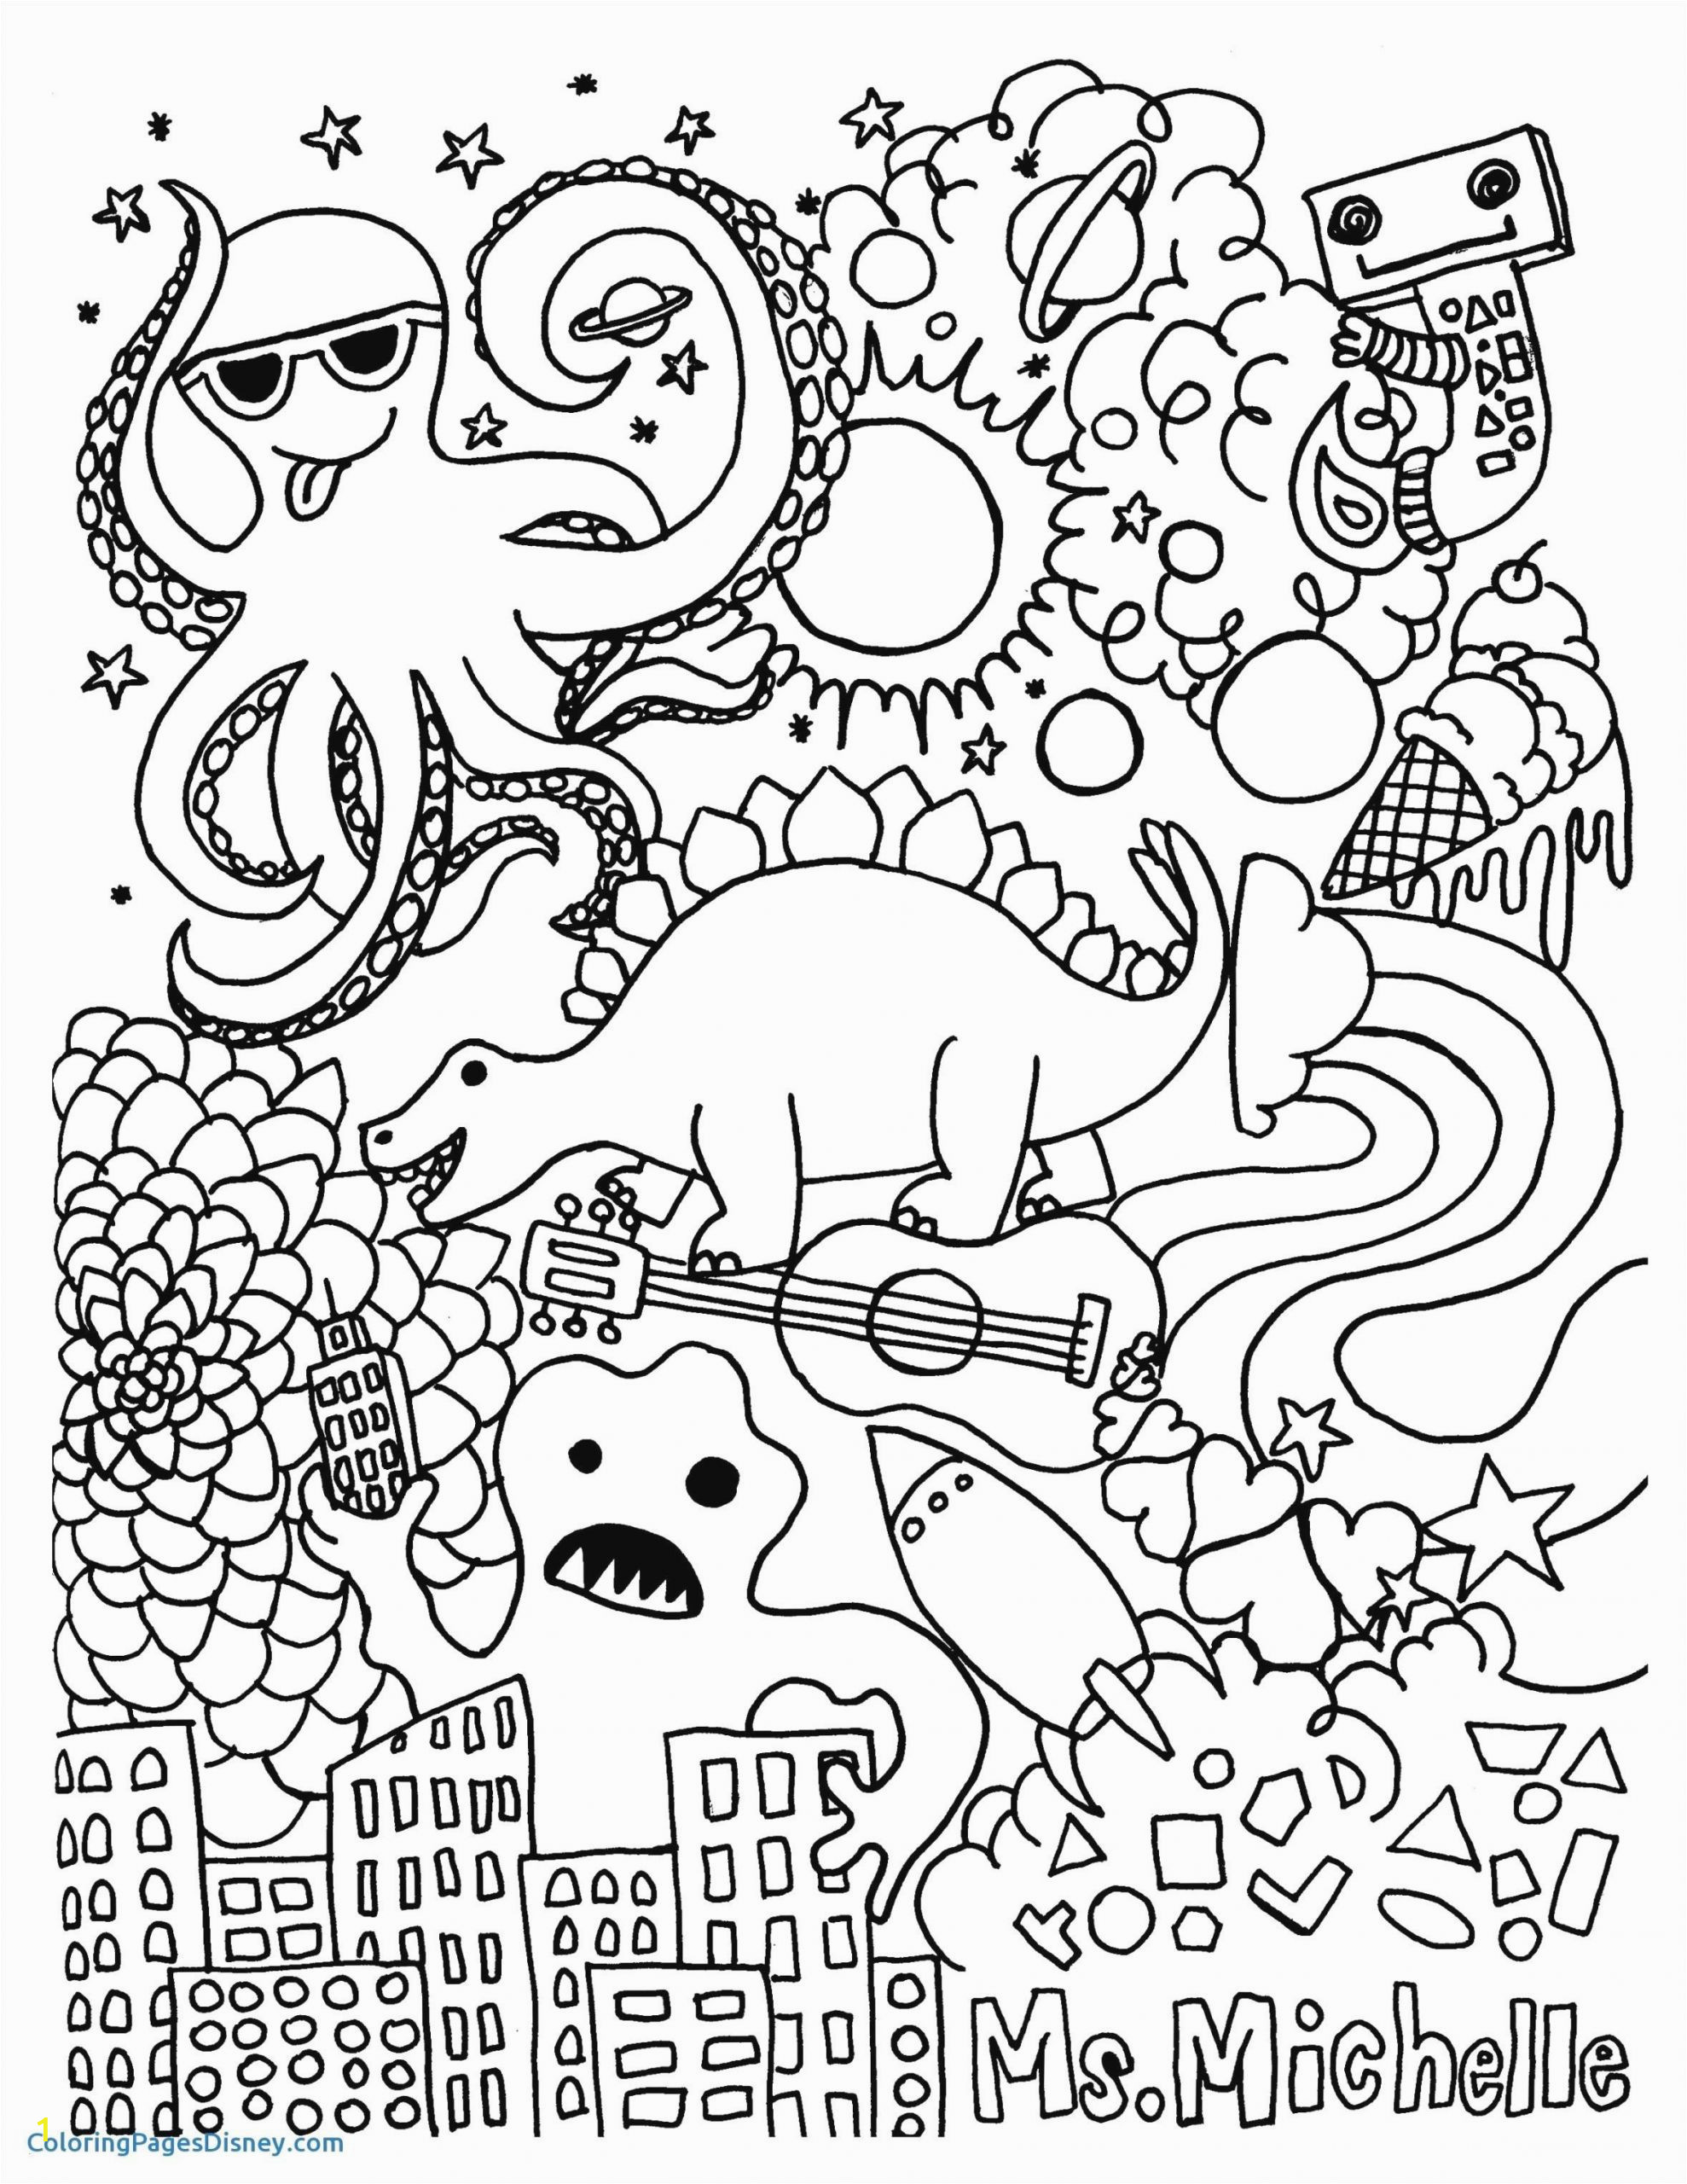 mindful colouring giraffe inspirational coloring book plants vs zombies coloring pages mindfulness of mindful colouring giraffe 1 scaled